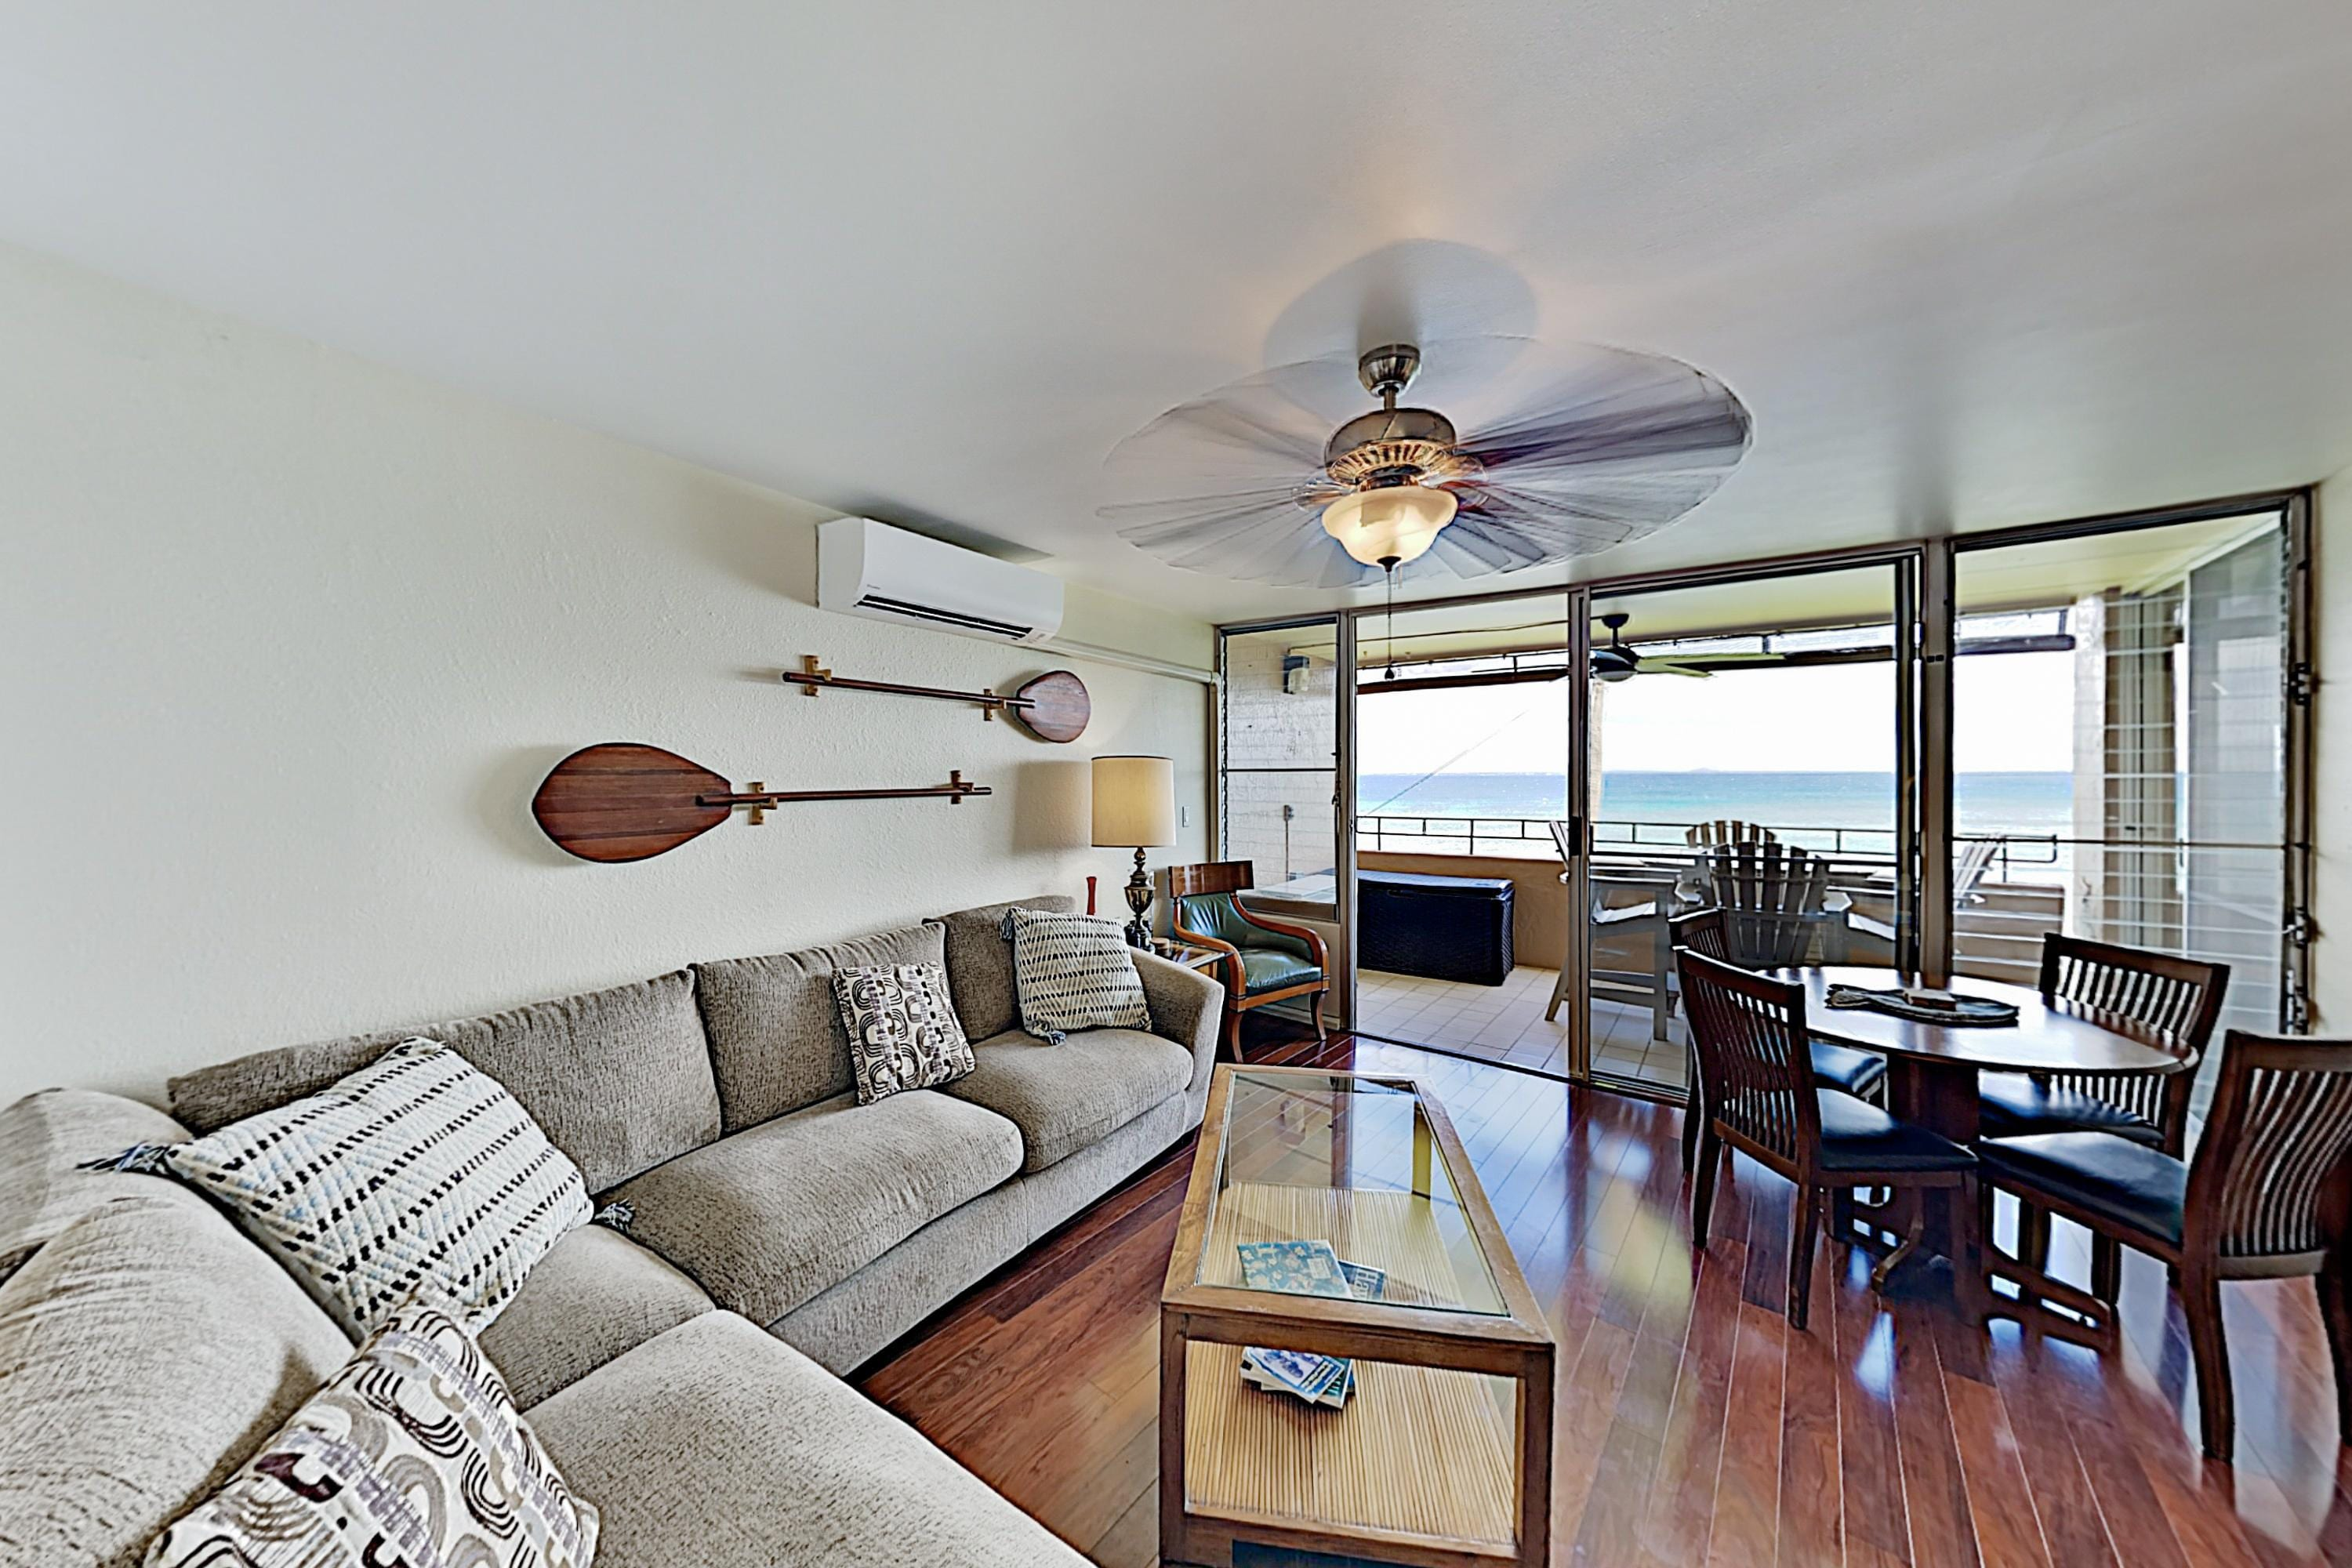 Property Image 2 - Island Sands Condo: Water Views & Oceanfront Pool